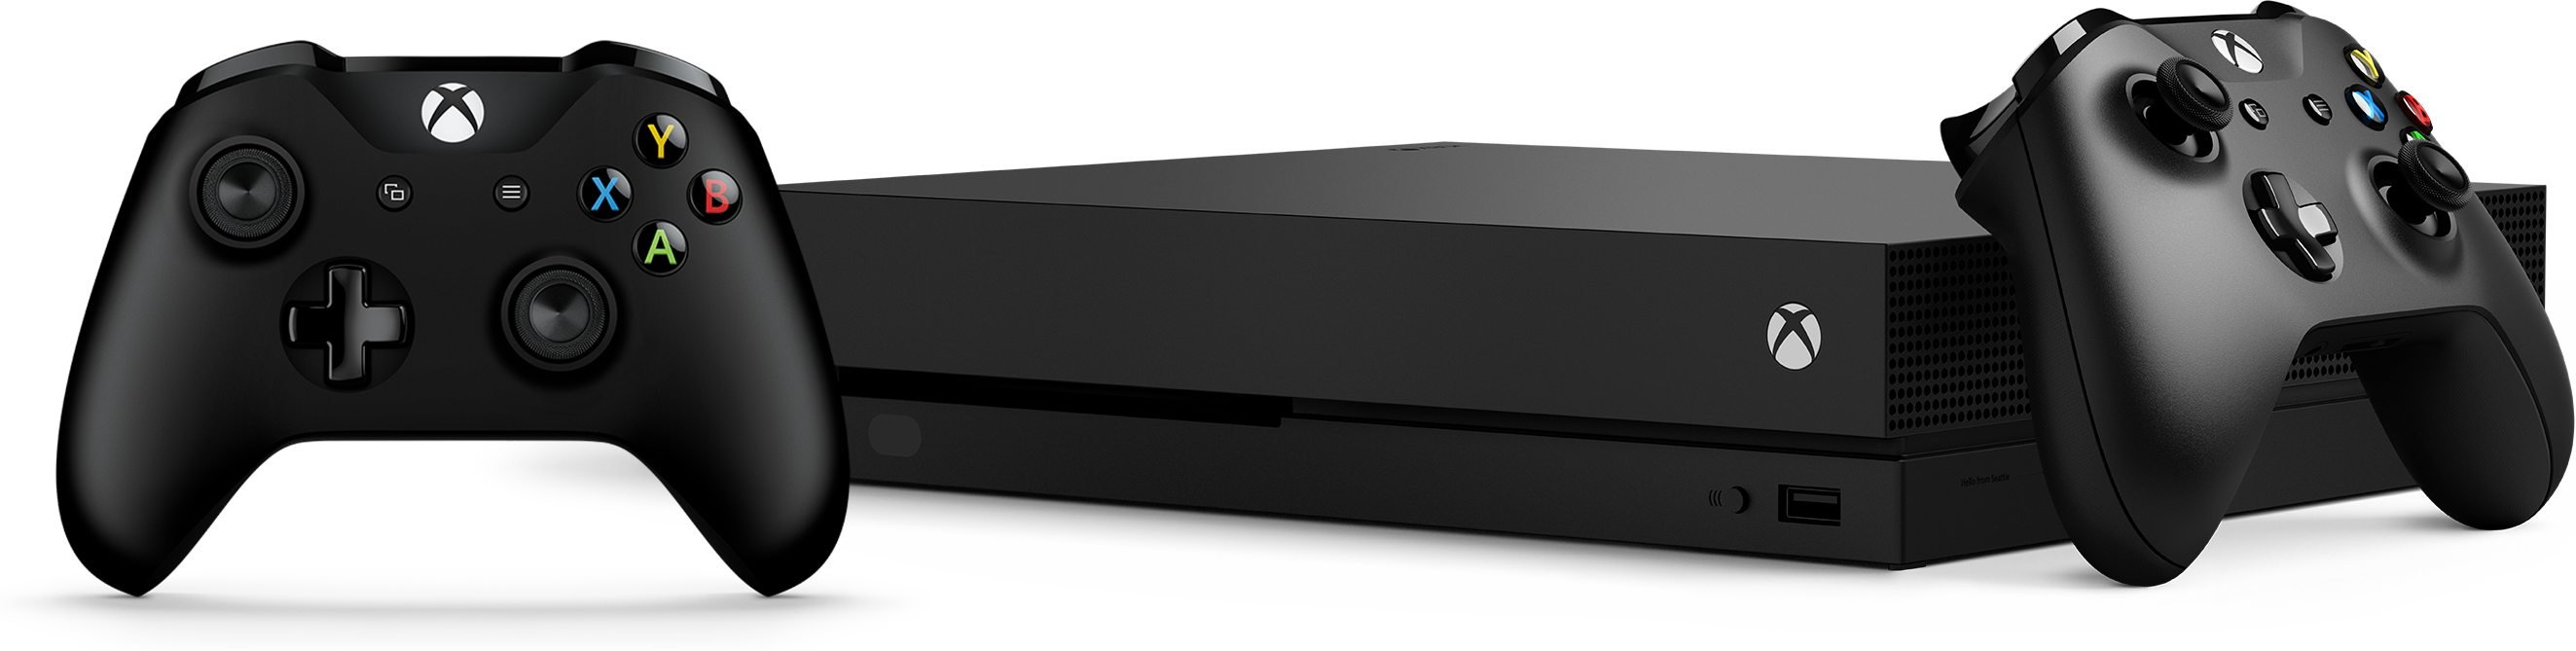 Xbox One X console with two Xbox One controllers